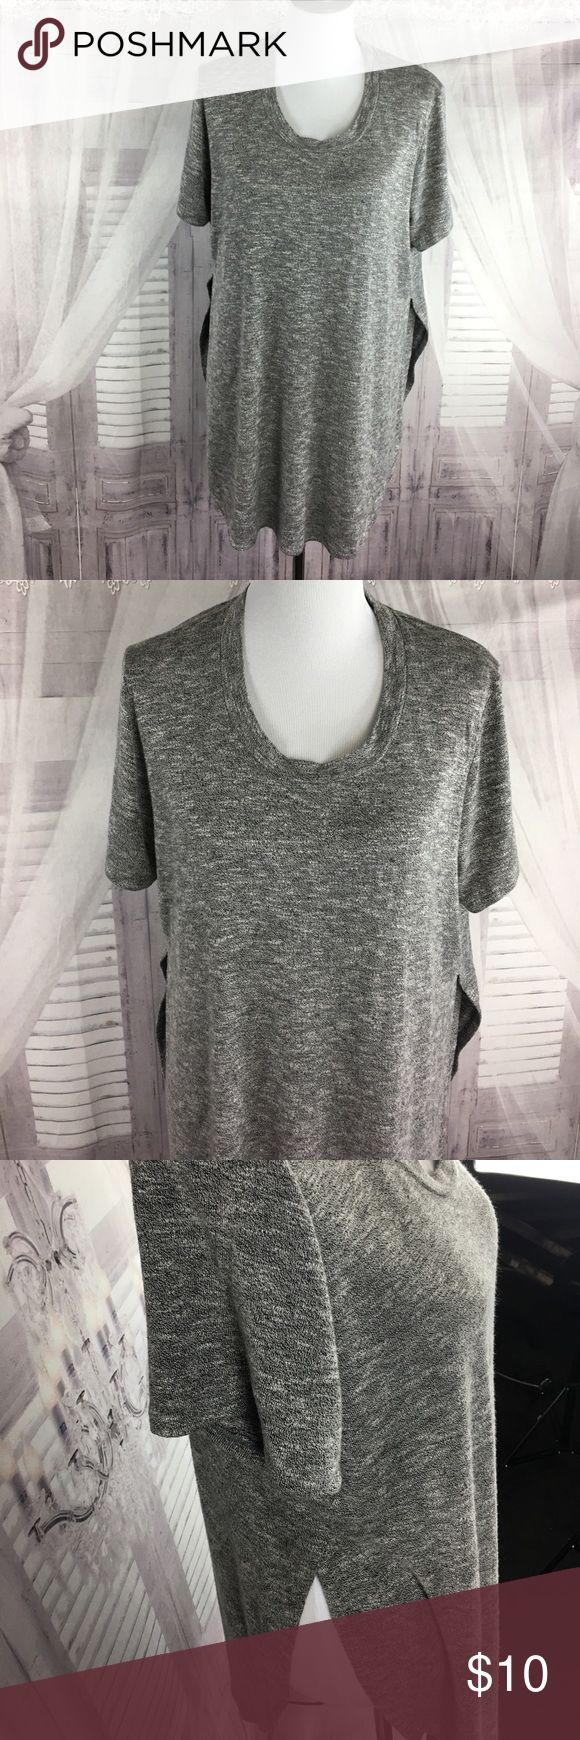 Gray Long short sleeve top Women's top -short sleeve and long enough to cover your bottom.  Has 2 slits on side and a great shirt for leggings, or anything were you want the backside covered! The open sides give it a fun edge. Size Large Mossimo Supply Co Tops